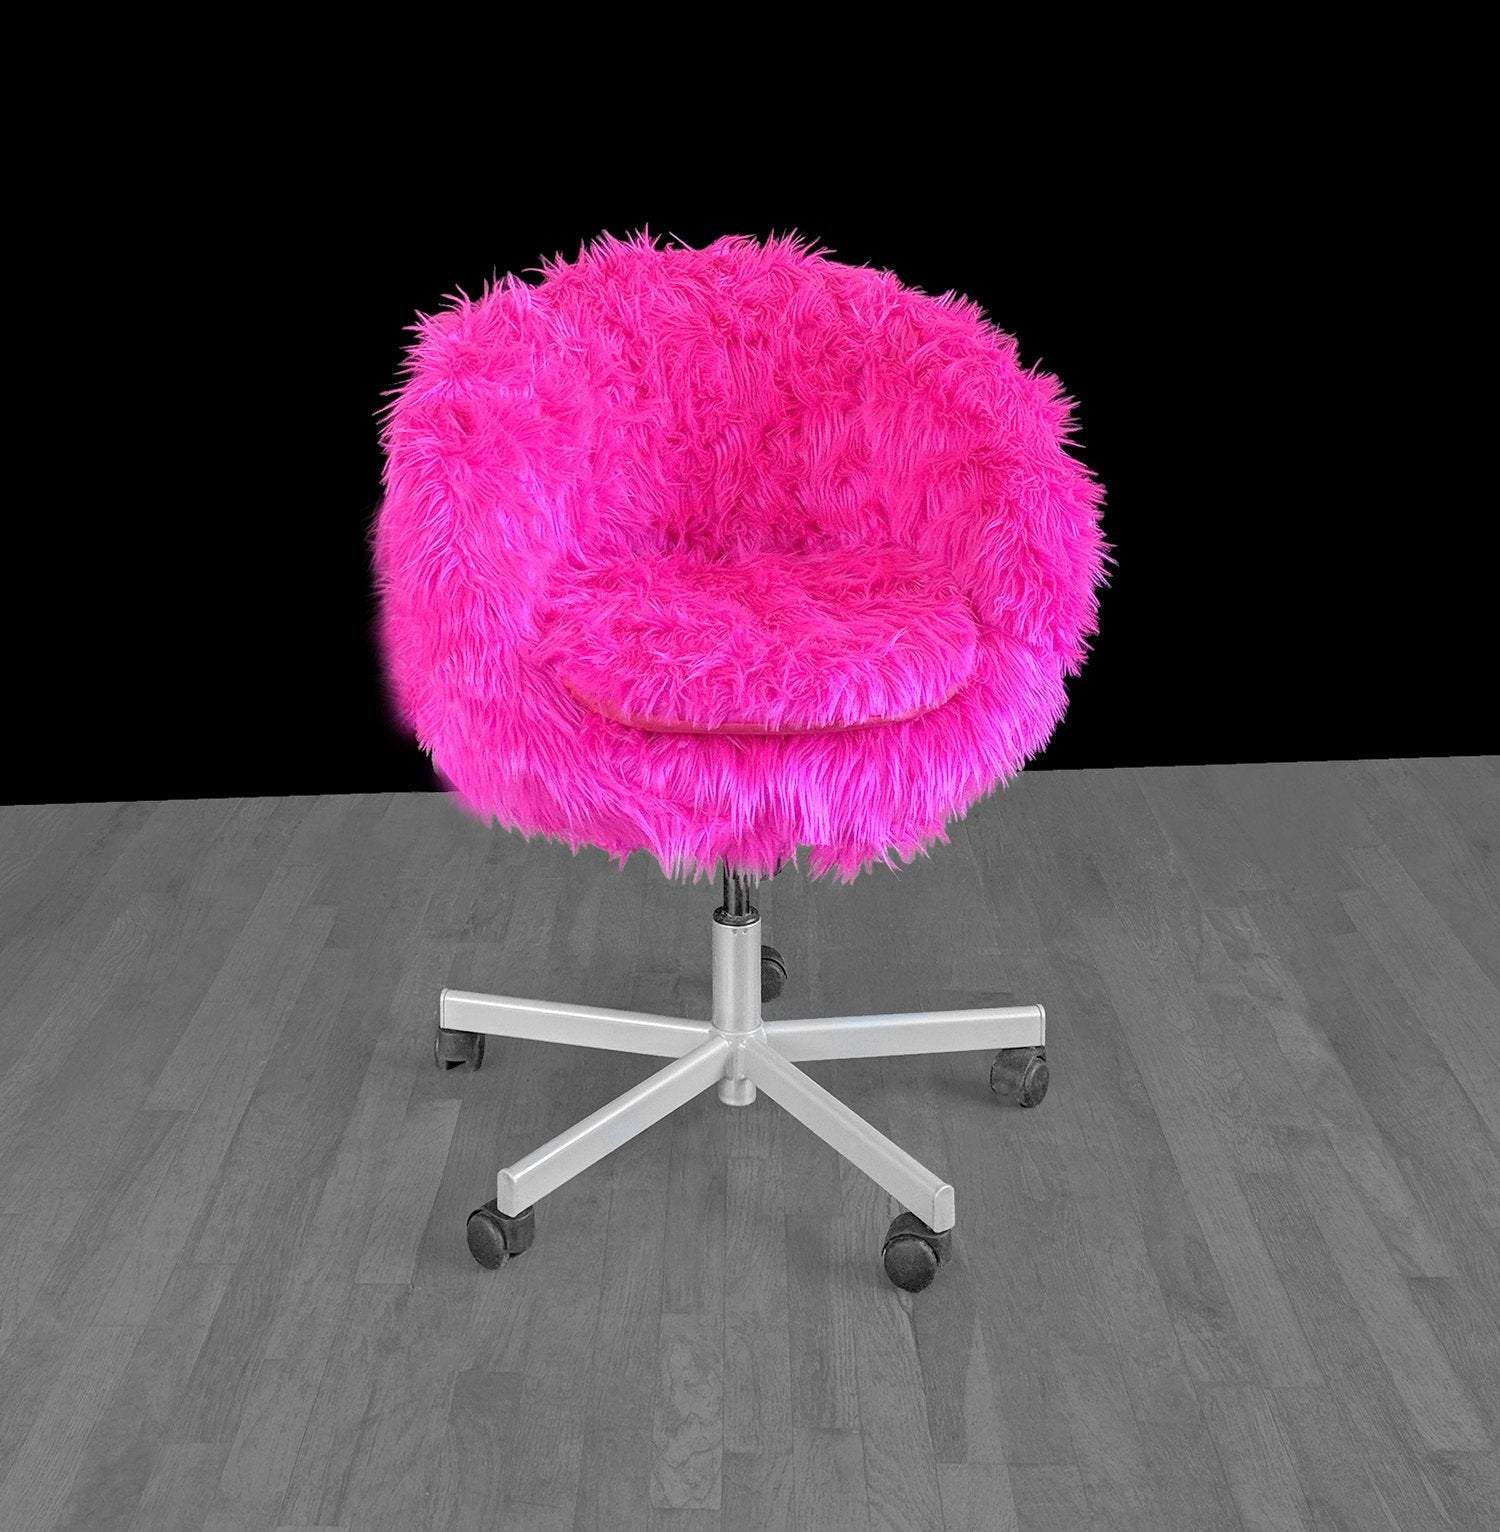 IKEA SKRUVSTA Chair Slip Cover, Hot Pink Fur in 2020